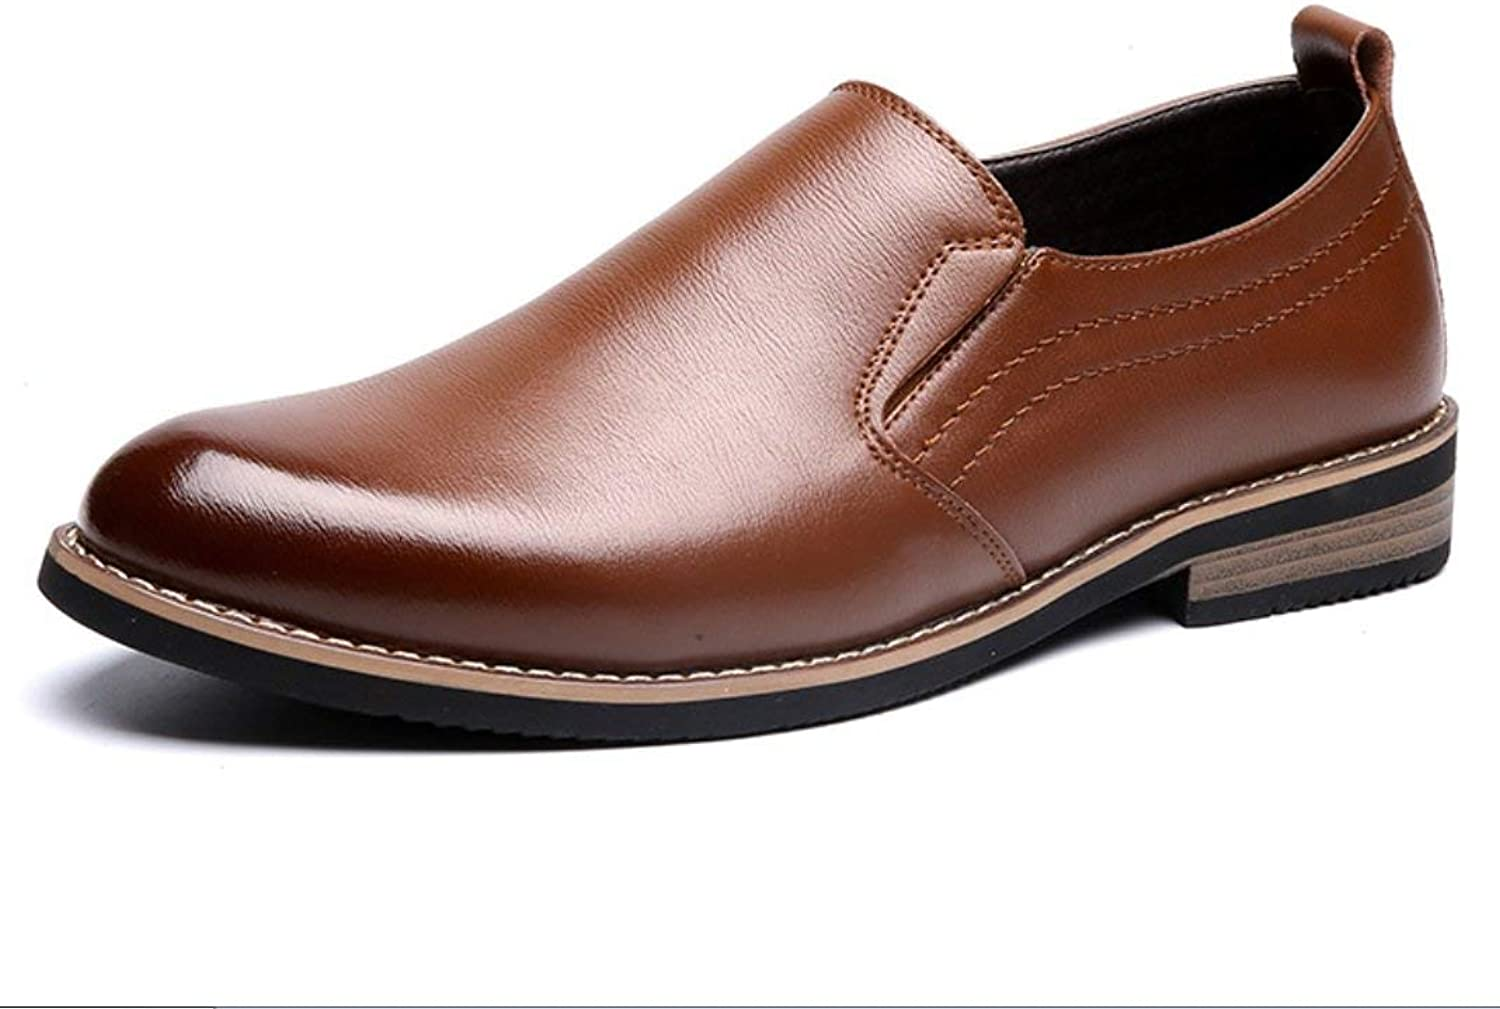 MON5F HOME Men's Leather shoes Dress Business Casual shoes Fashion England Men's shoes Leather shoes (color   Brown, Size   40)